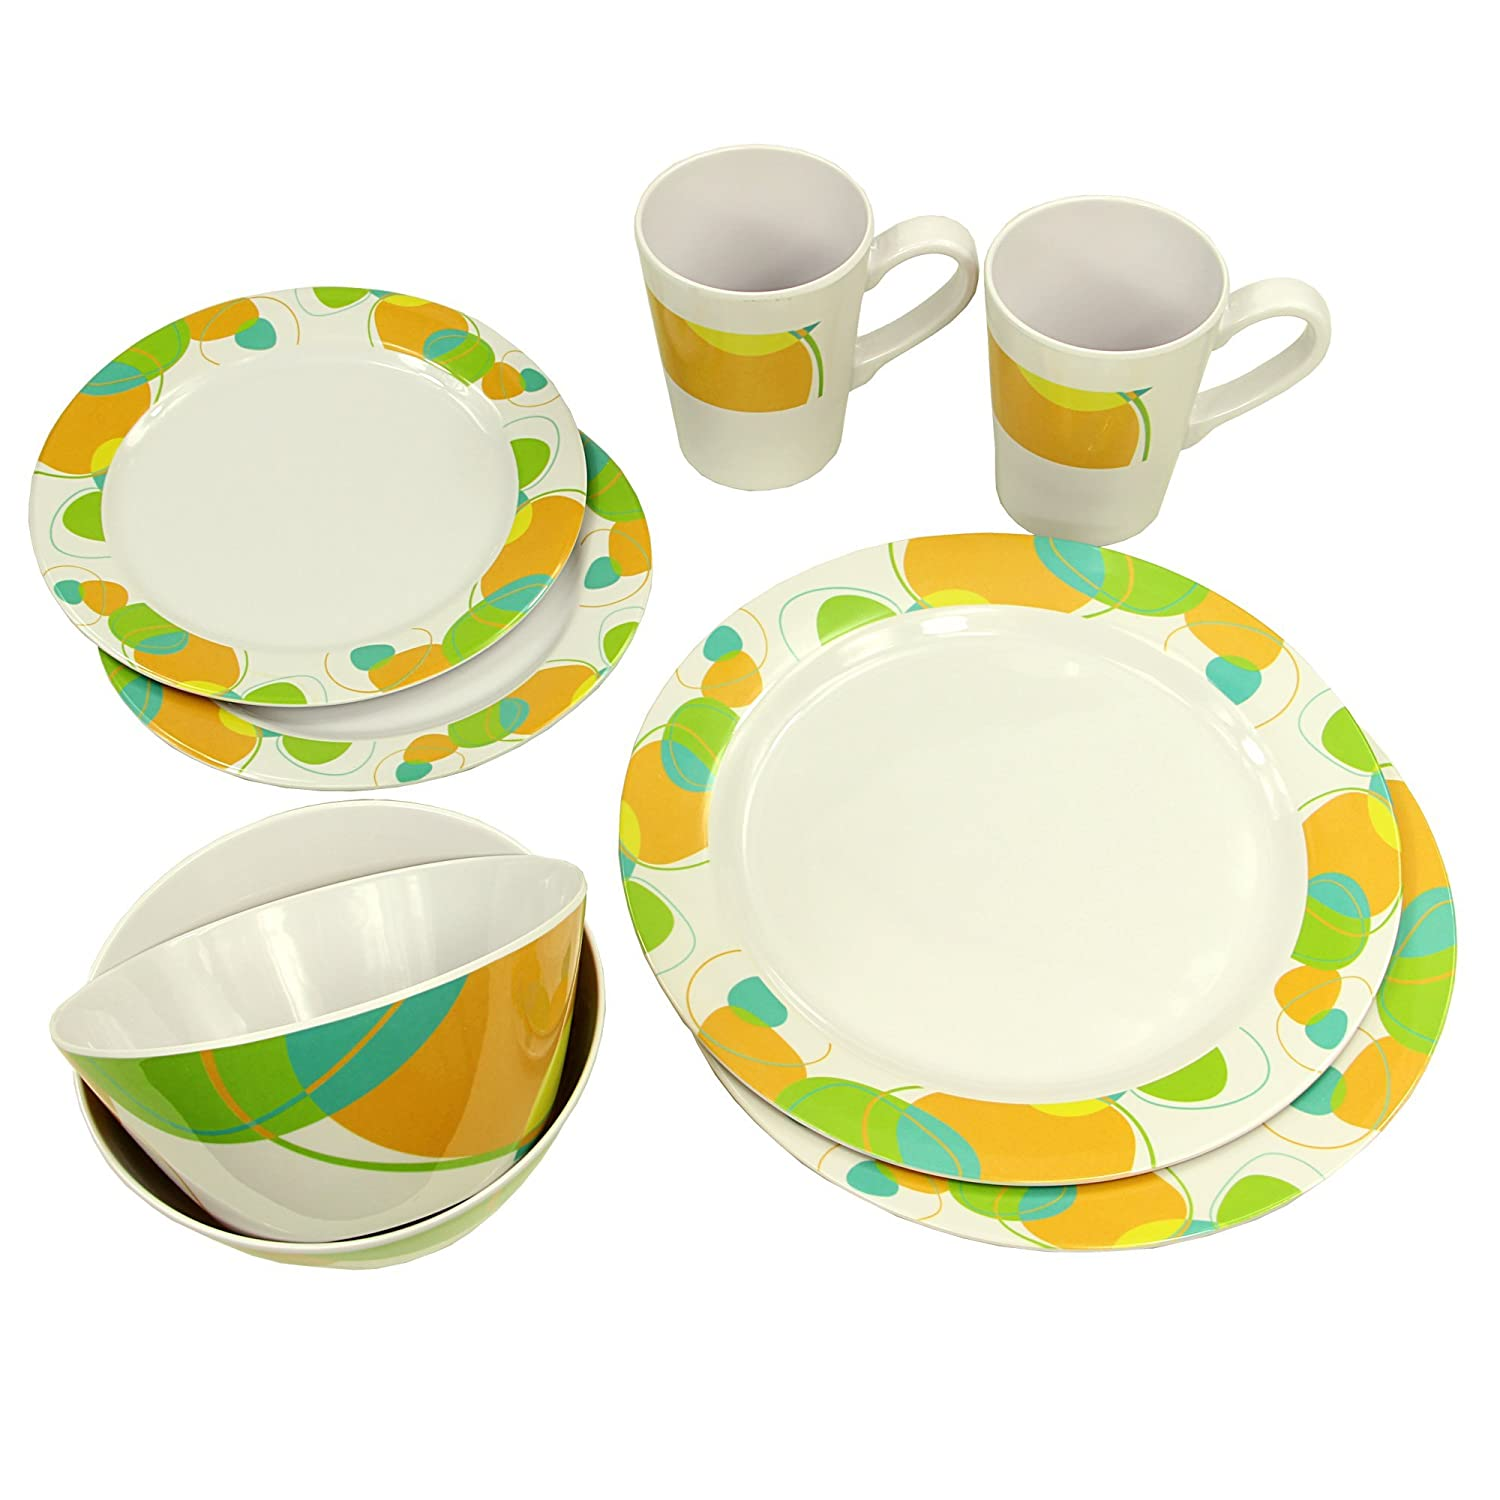 10T Outdoor Equipment Unisex's Arvon Dinnerware Camping Tableware Set (8 Piece), Orange, One Size 765532